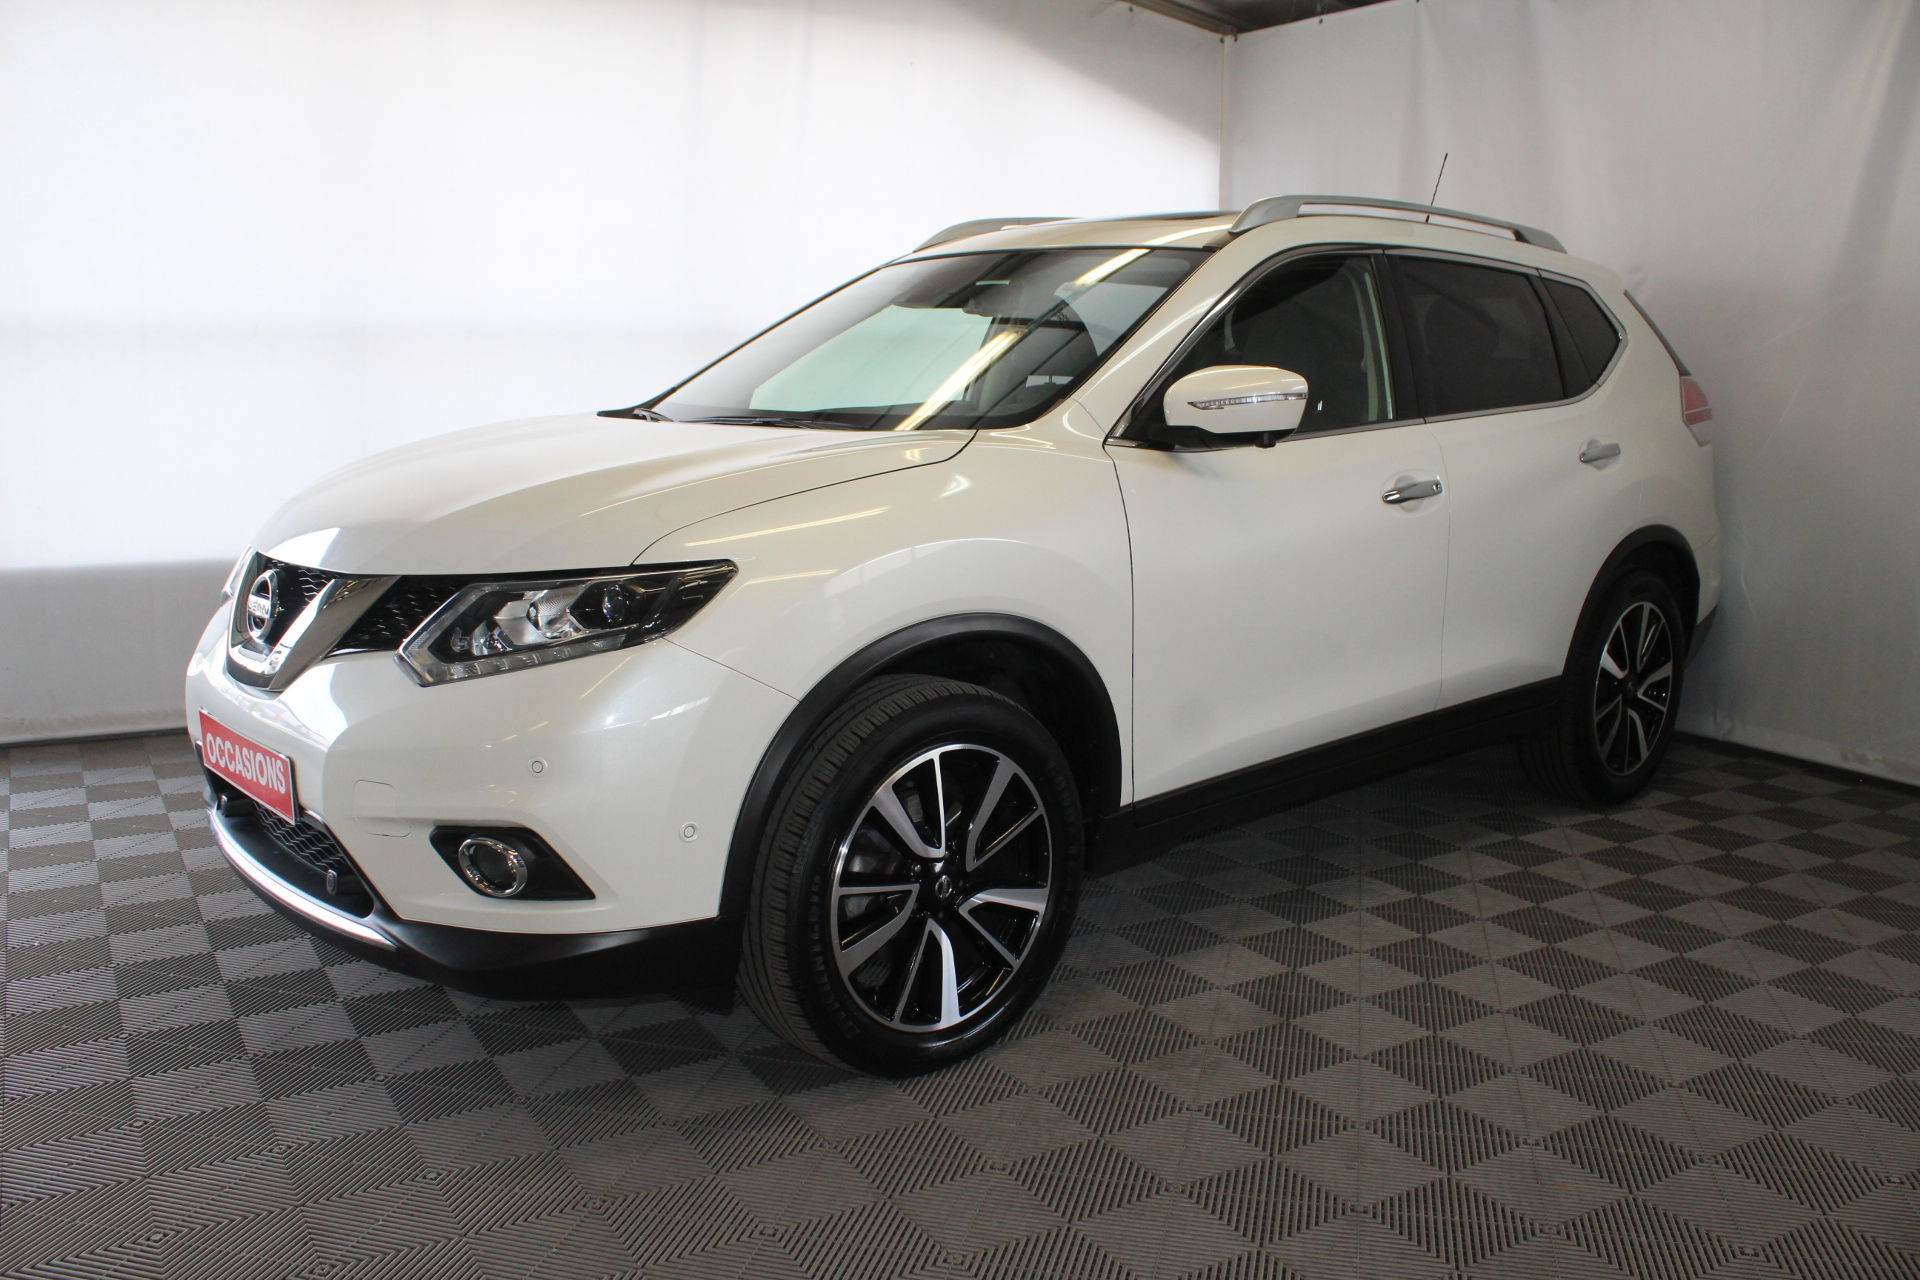 NISSAN X TRAIL 1.6 dCi 130 7pl All-Mode 4x4-i Tekna d'occasion